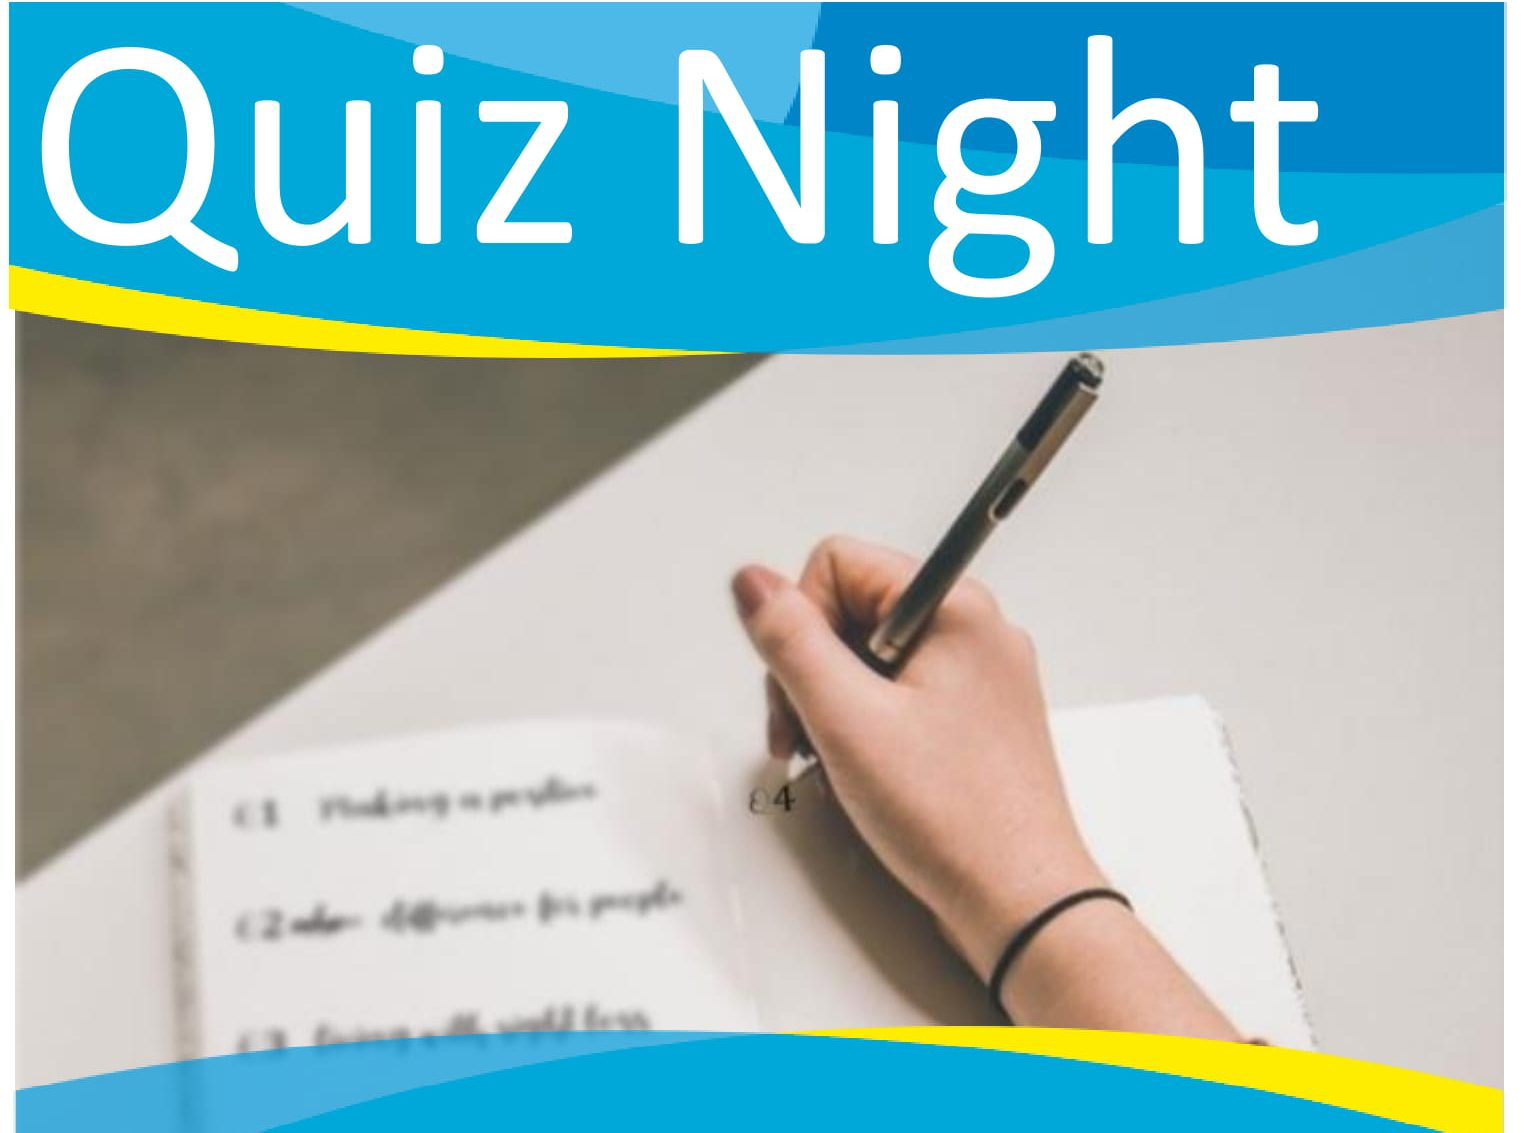 Quiz Night title with blue and yellow curved banner, image in background is of hand holding pen writing answers to quiz in note book. book on white table.